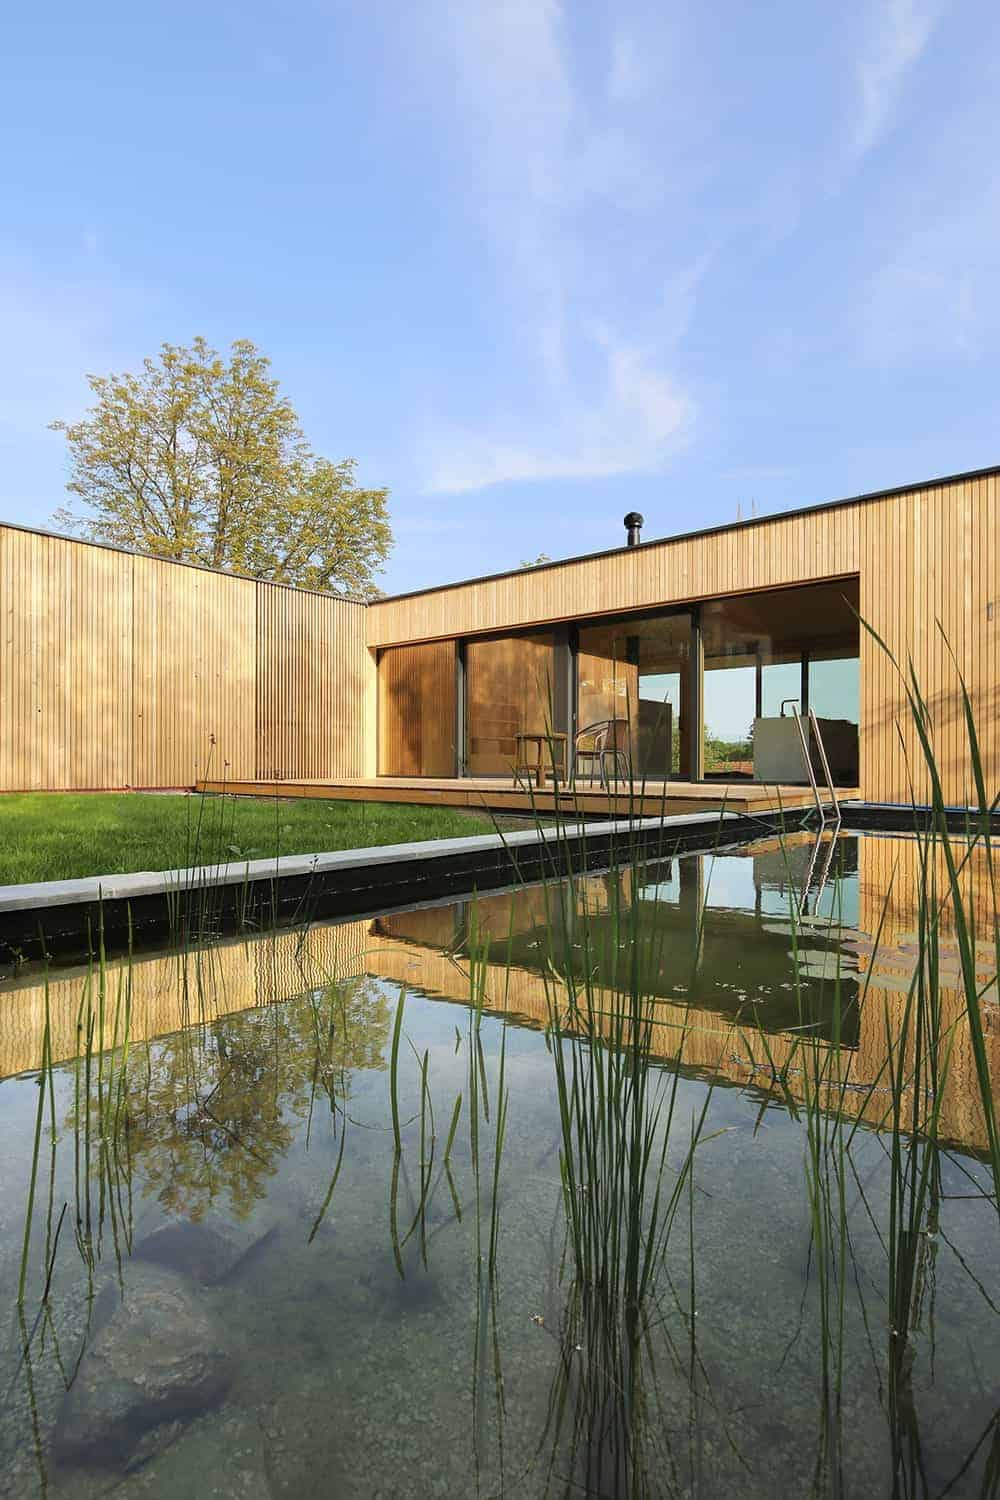 This is a minimalist landscaping that has a wooden deck patio trasitioning to a small grass lawn complemented by a small pond. These are then complemented by the wooden shiplap walls surrounding the area.